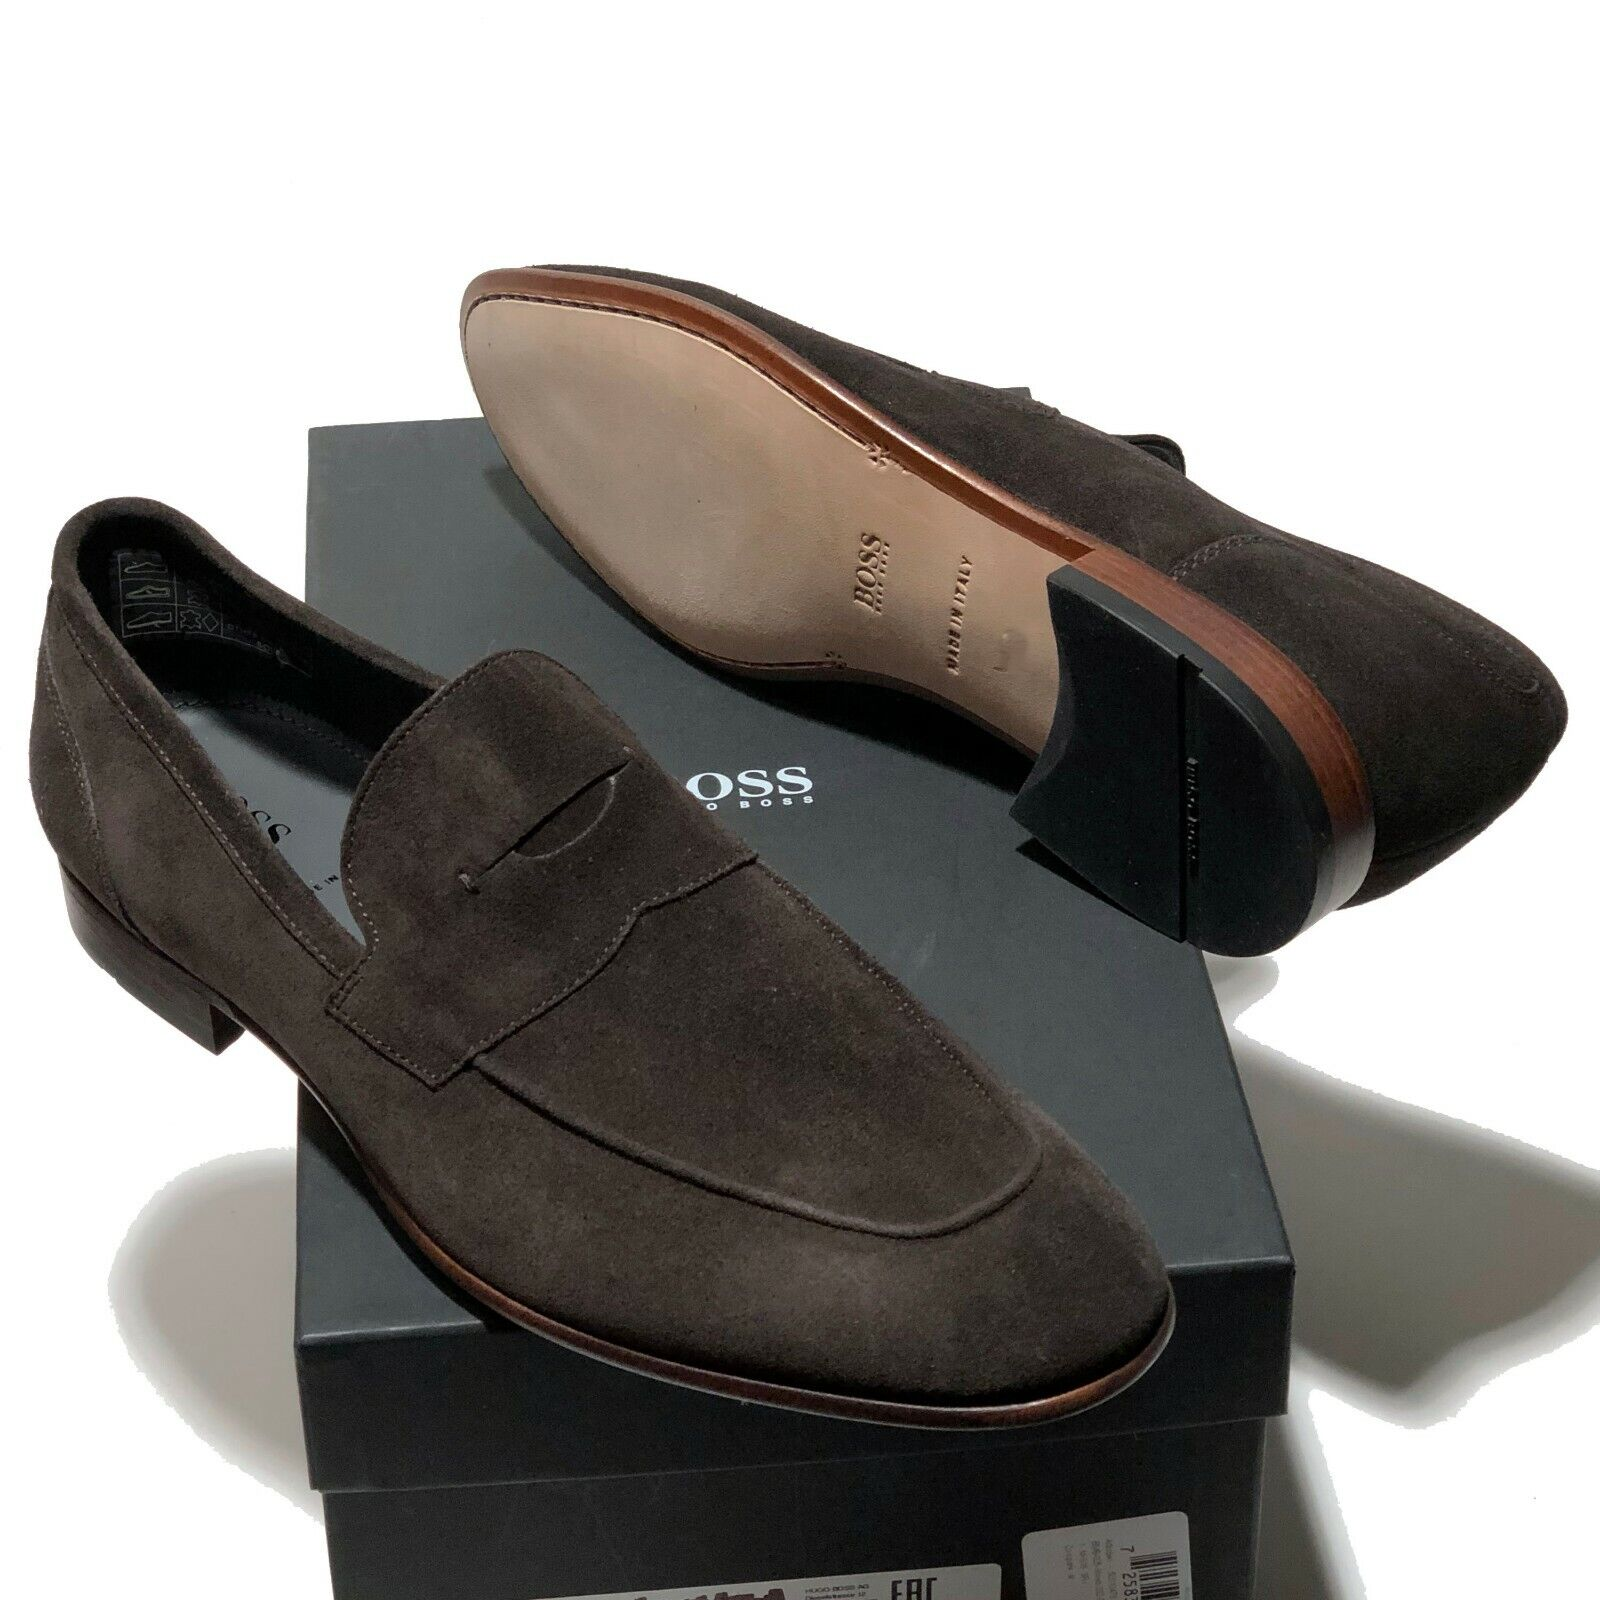 Hugo Boss ITALY Dark Brown Suede Leather Penny Loafers Dress 9 42 Men's Casual